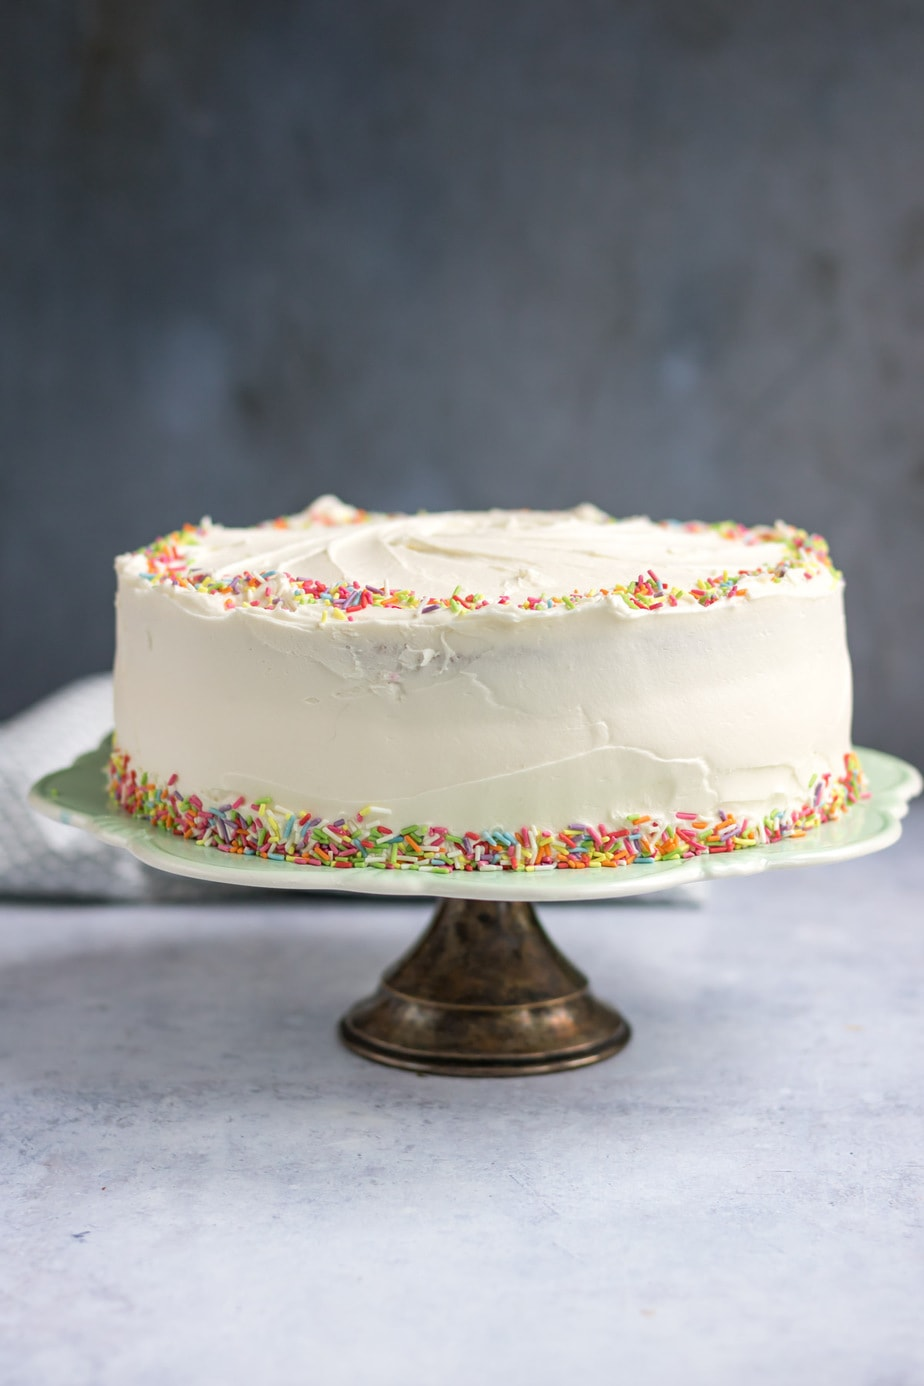 Layer cake with frosting and sprinkles on a cake stand.